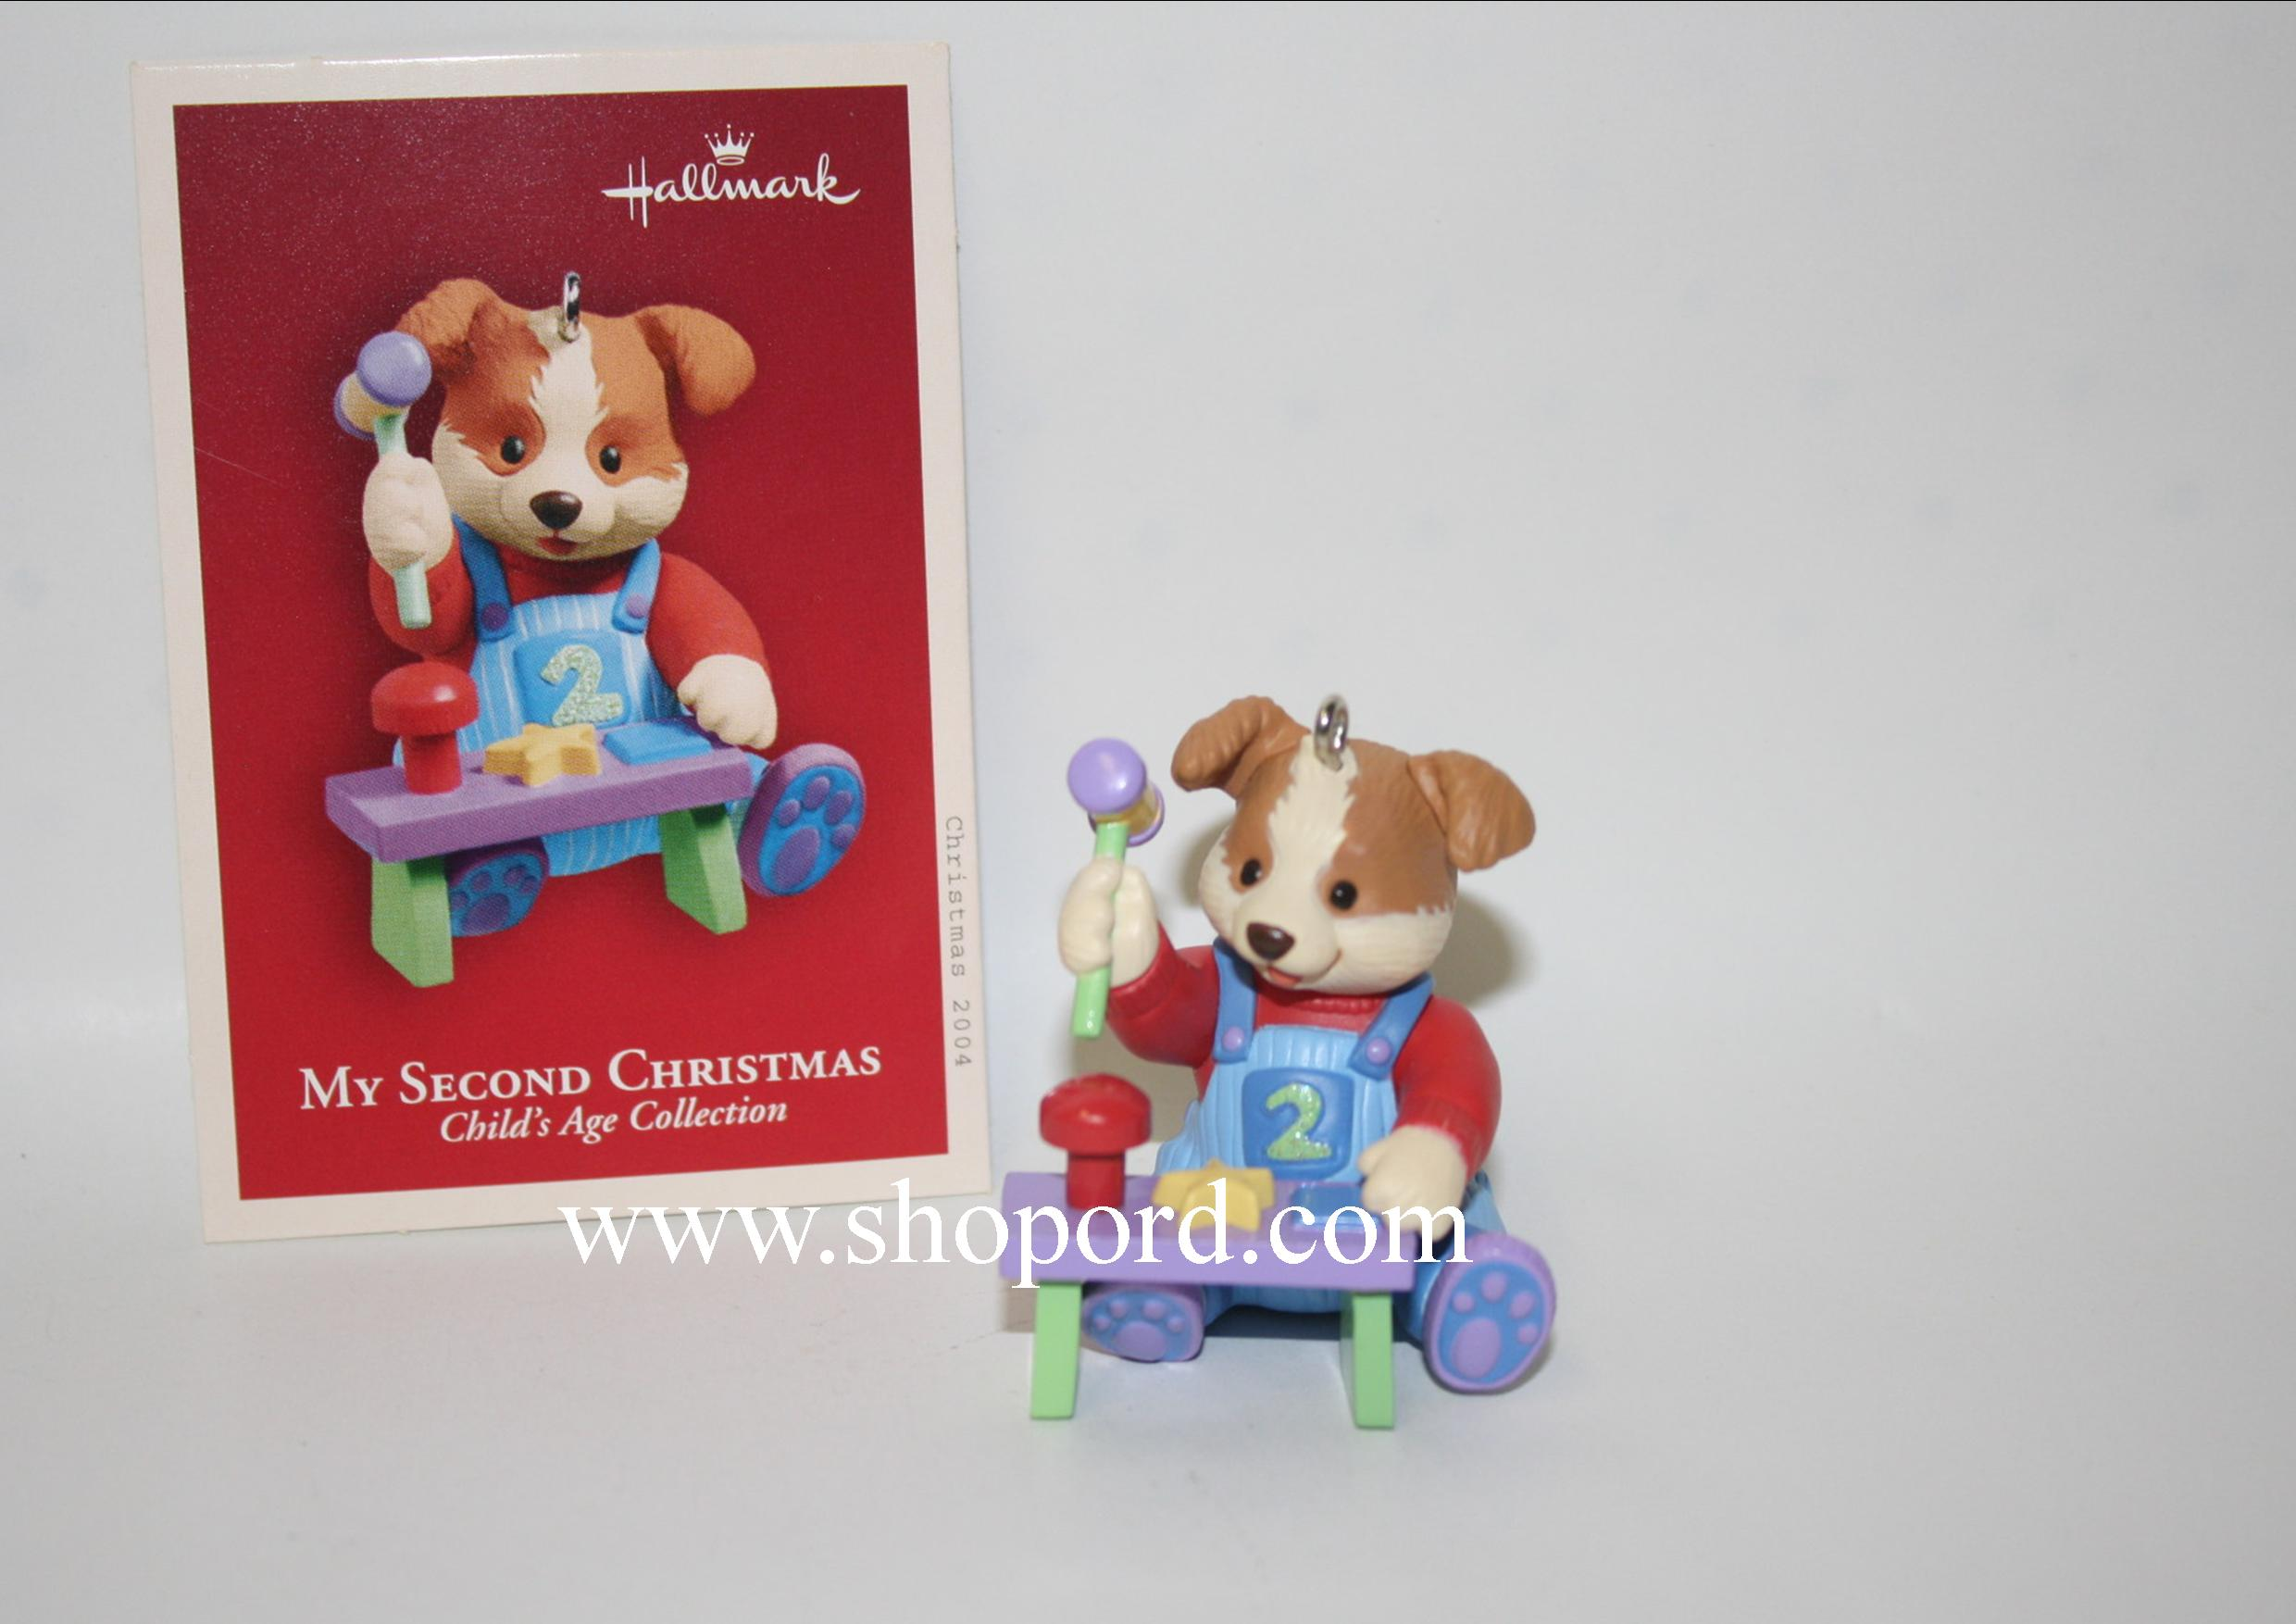 Hallmark 2004 My Second Christmas Childs Age Collection Boy Ornament QXG5664